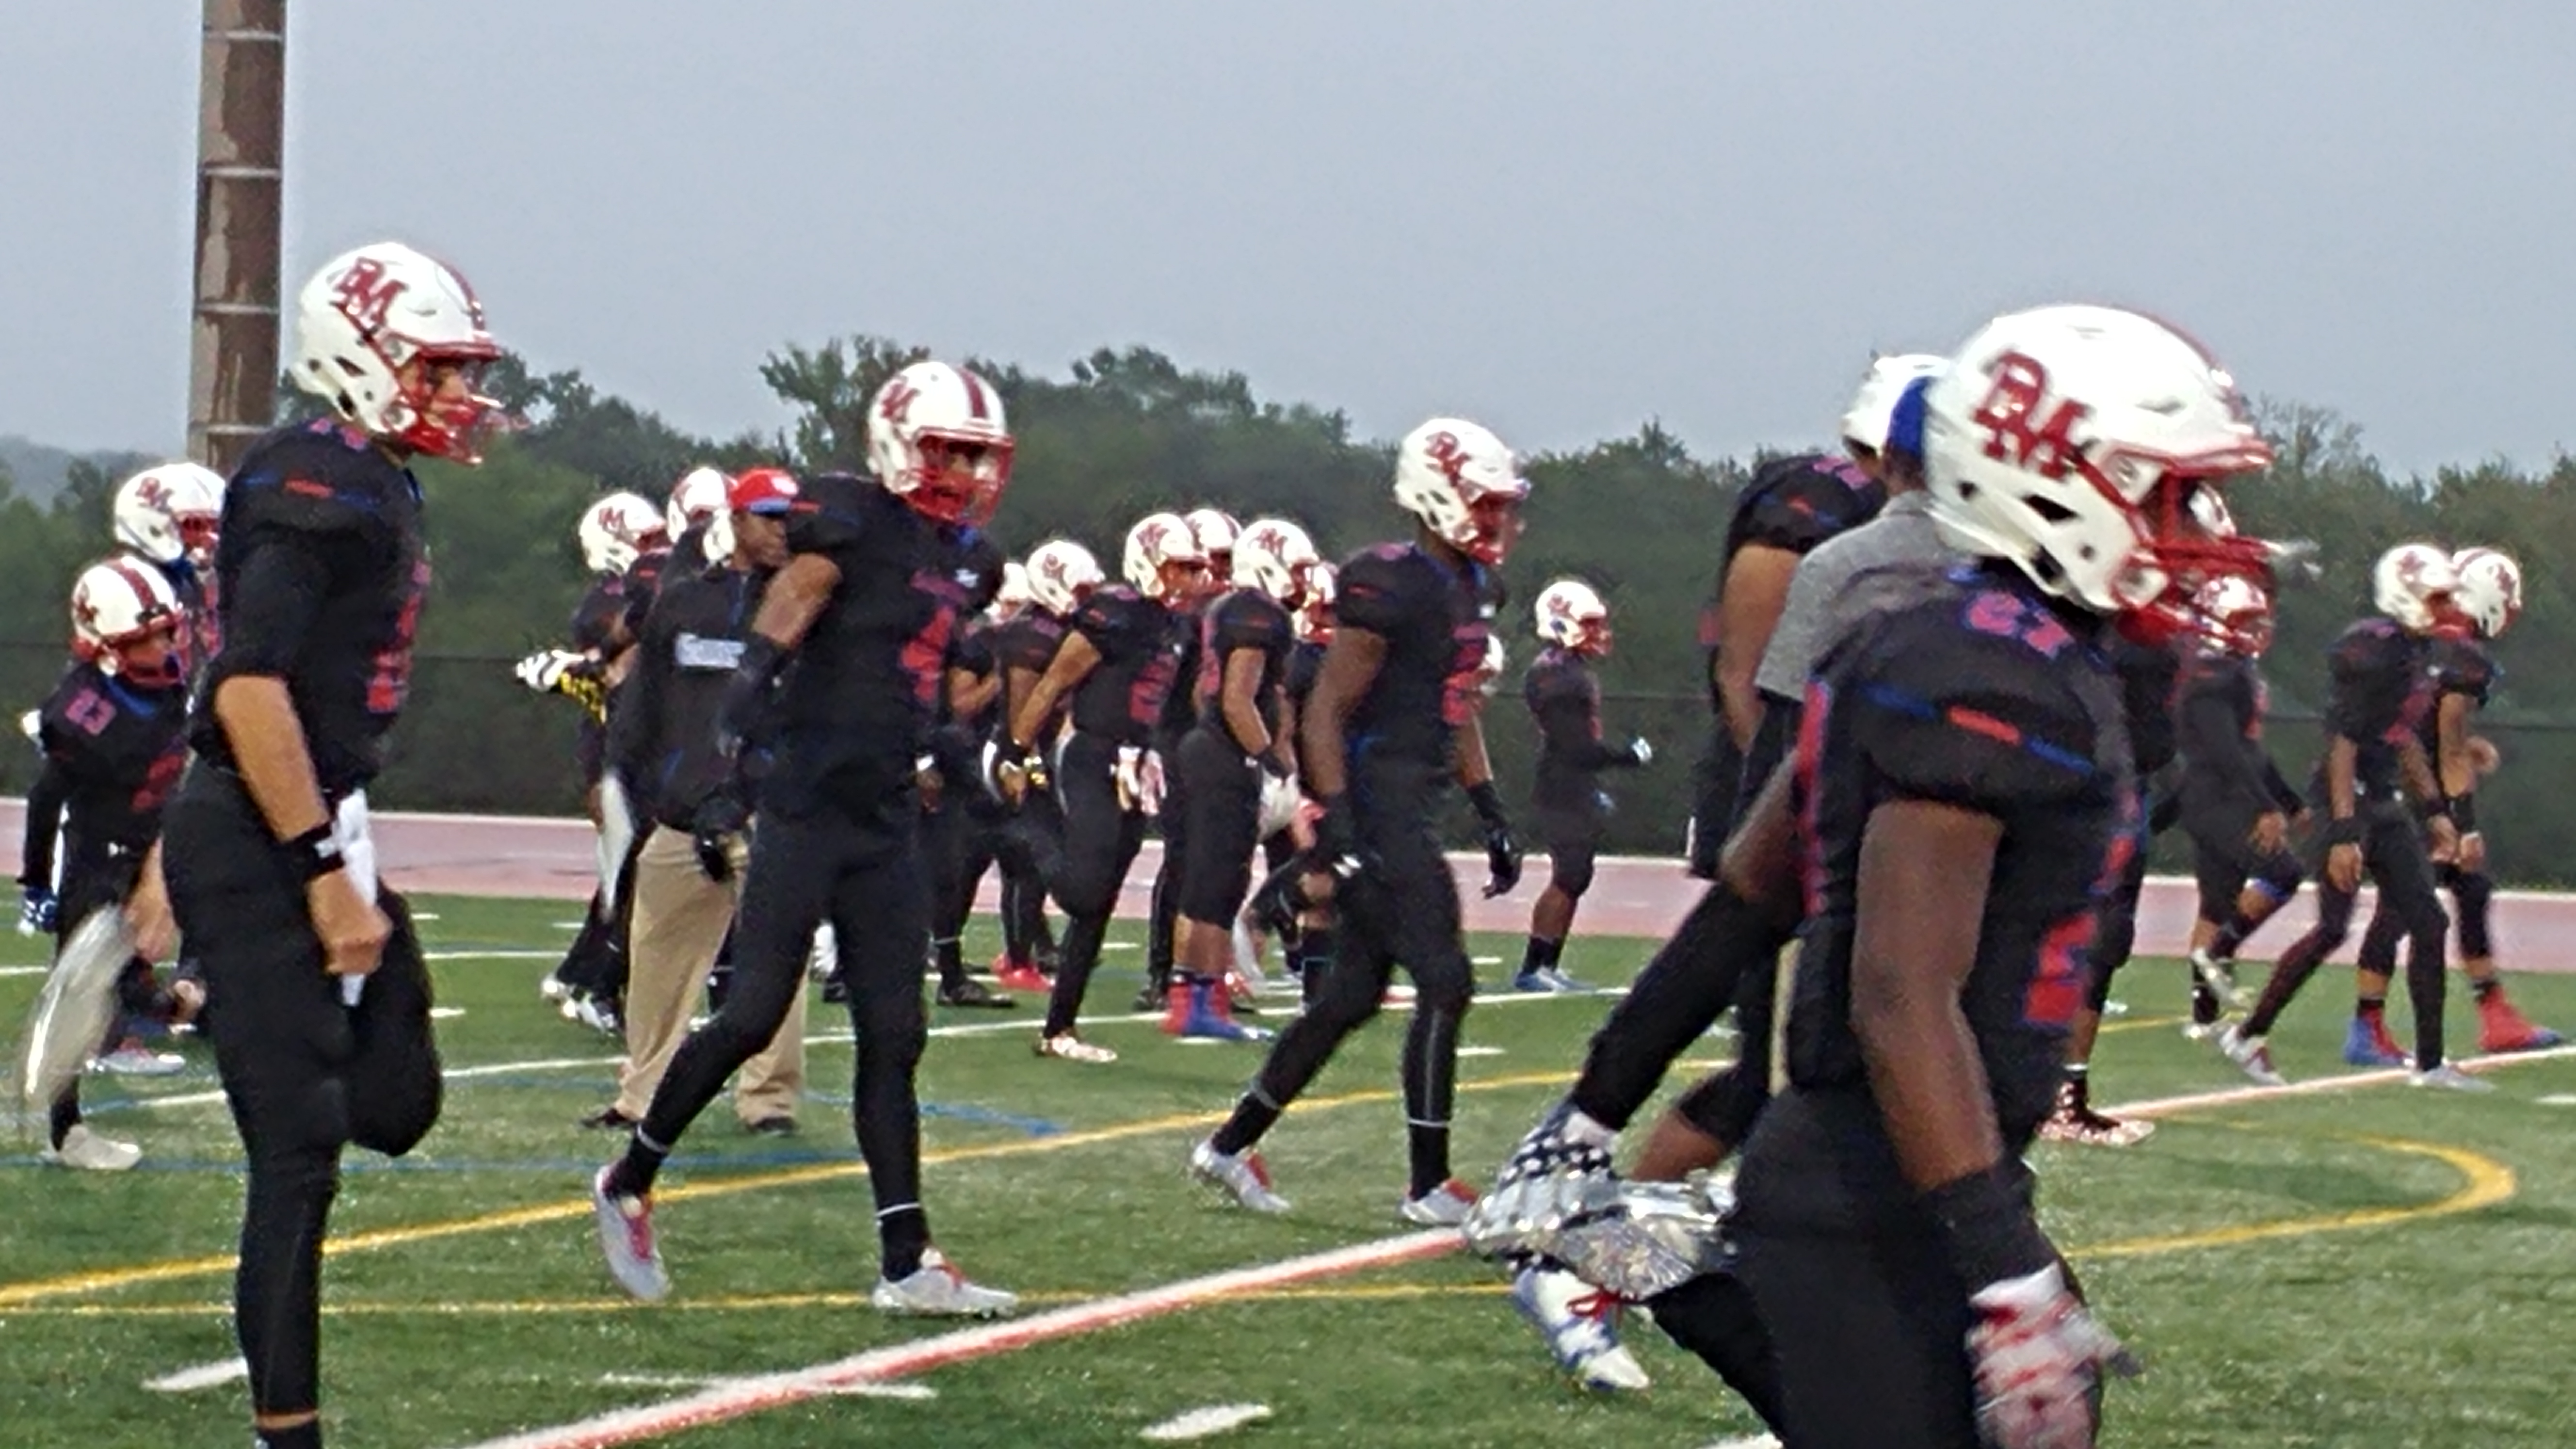 DeMatha gets set for its showdown against St. John's (Photo: Jim Halley, USA TODAY Sports)